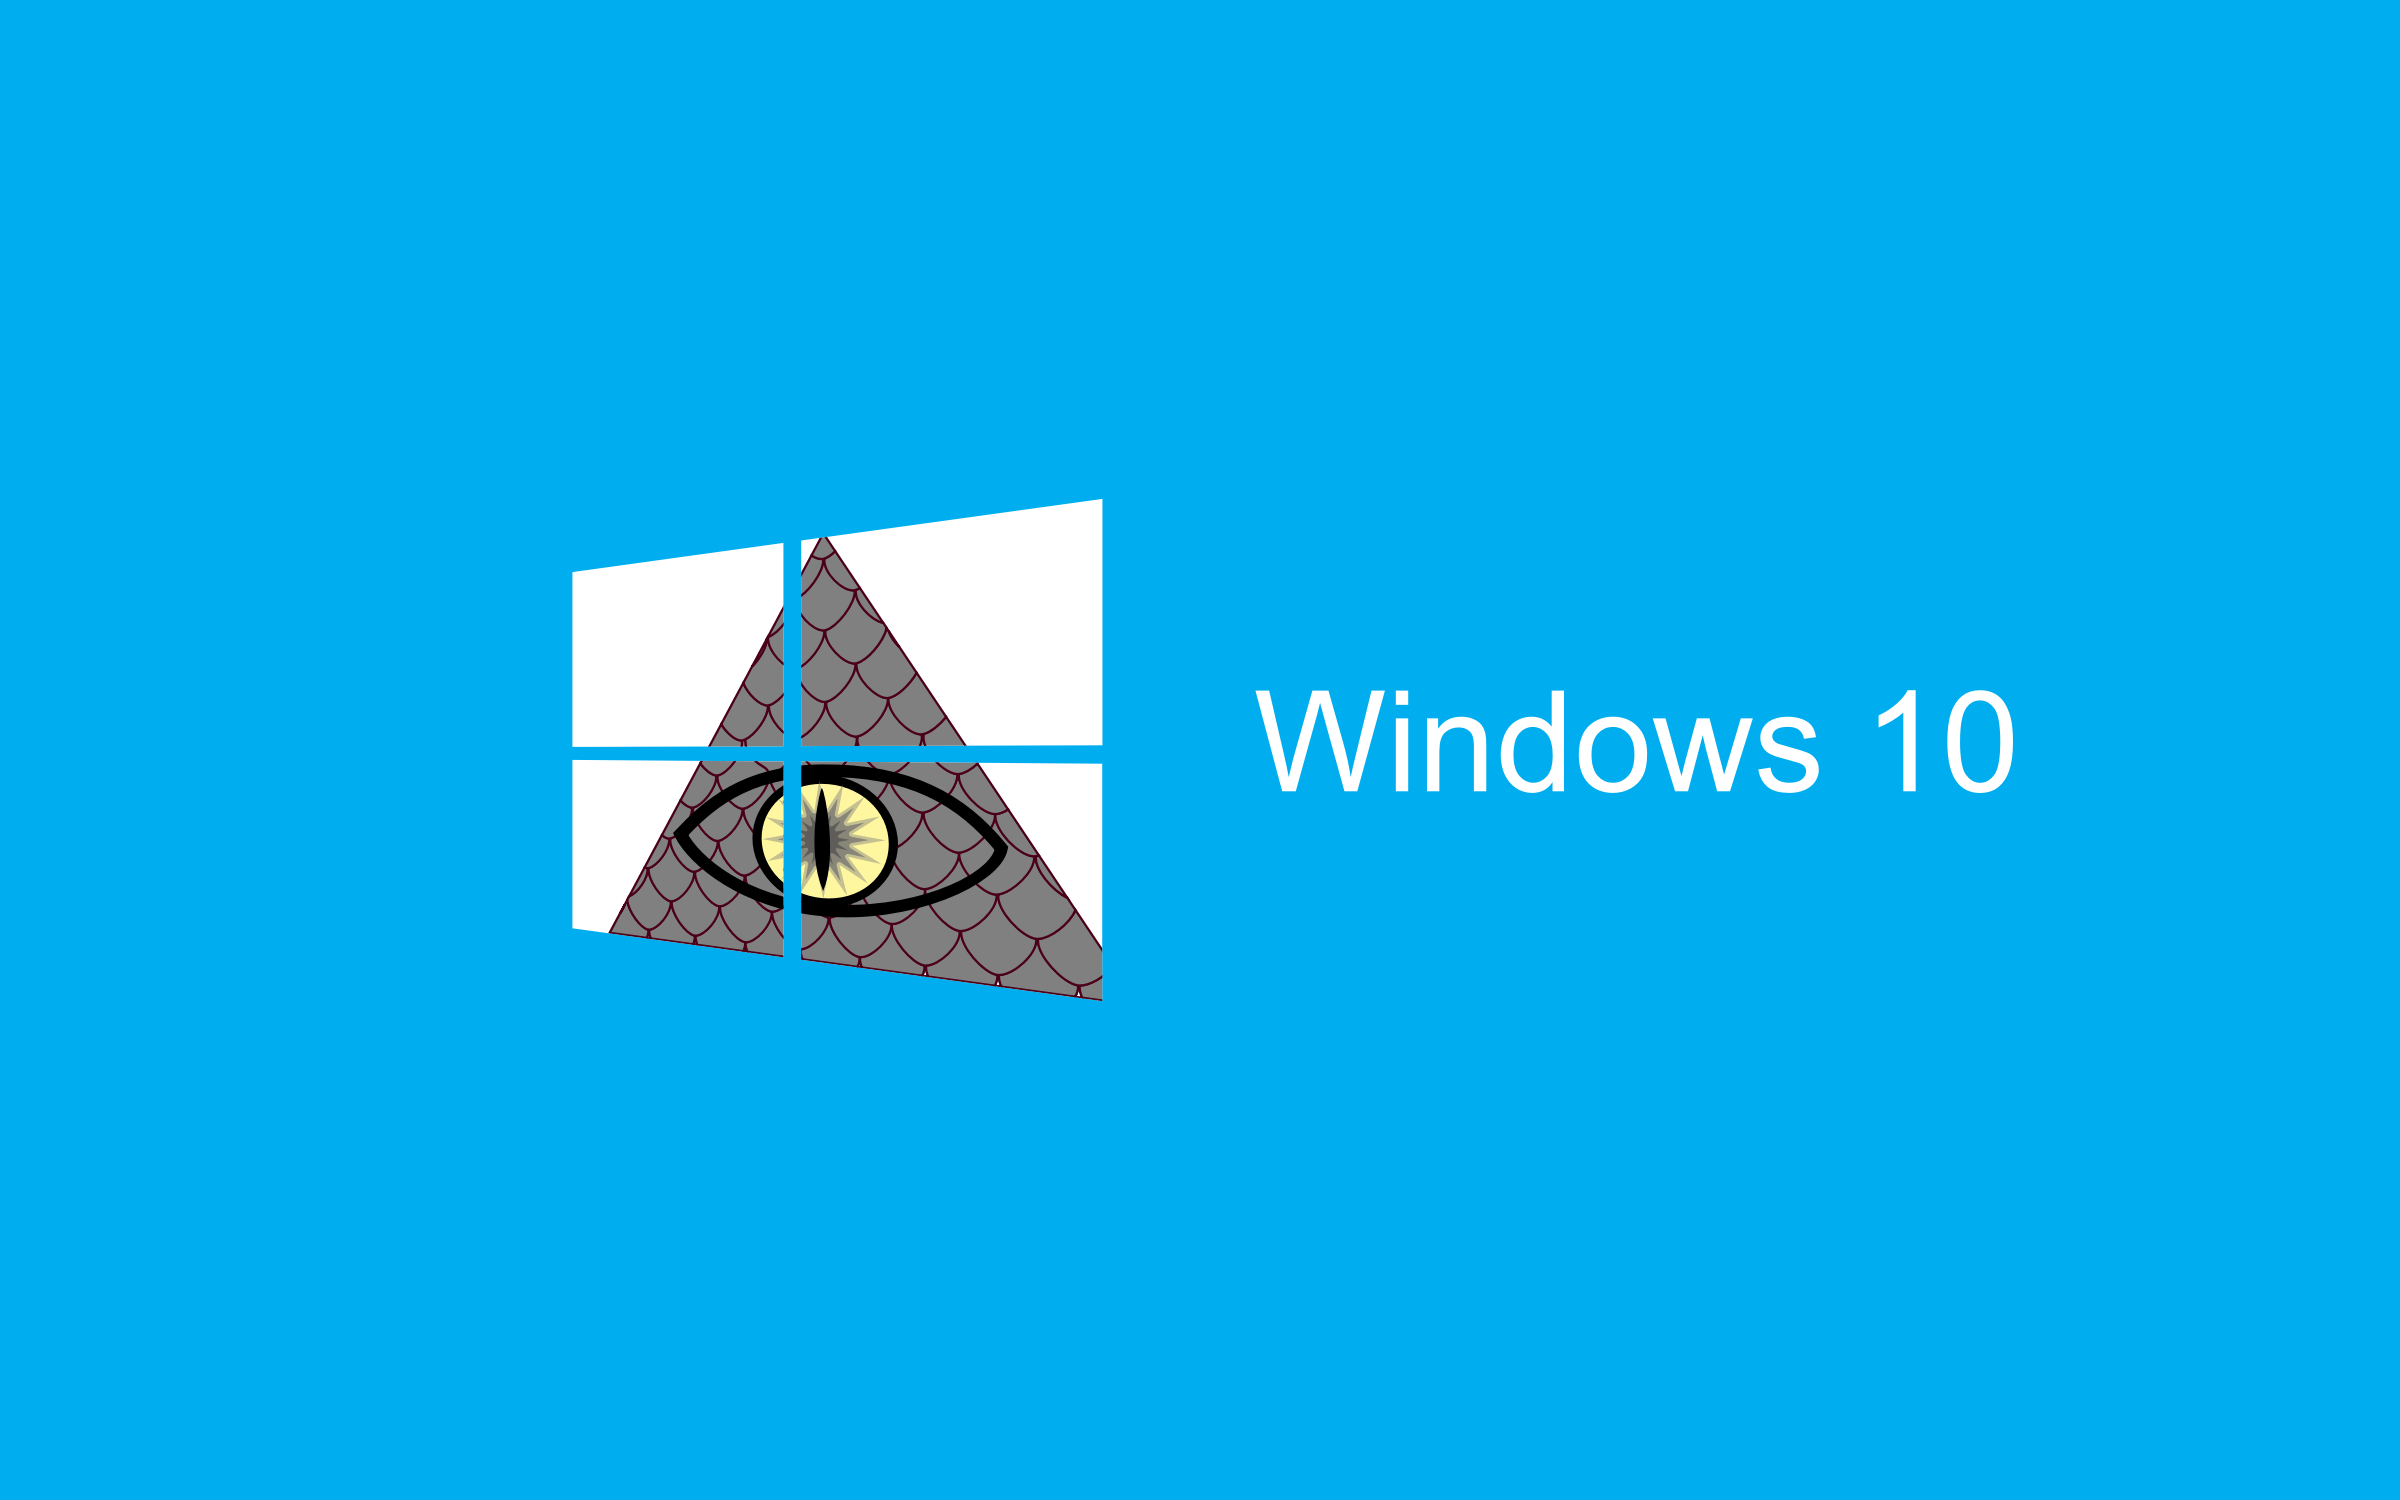 Windows 10 clipart 3 » Clipart Portal.